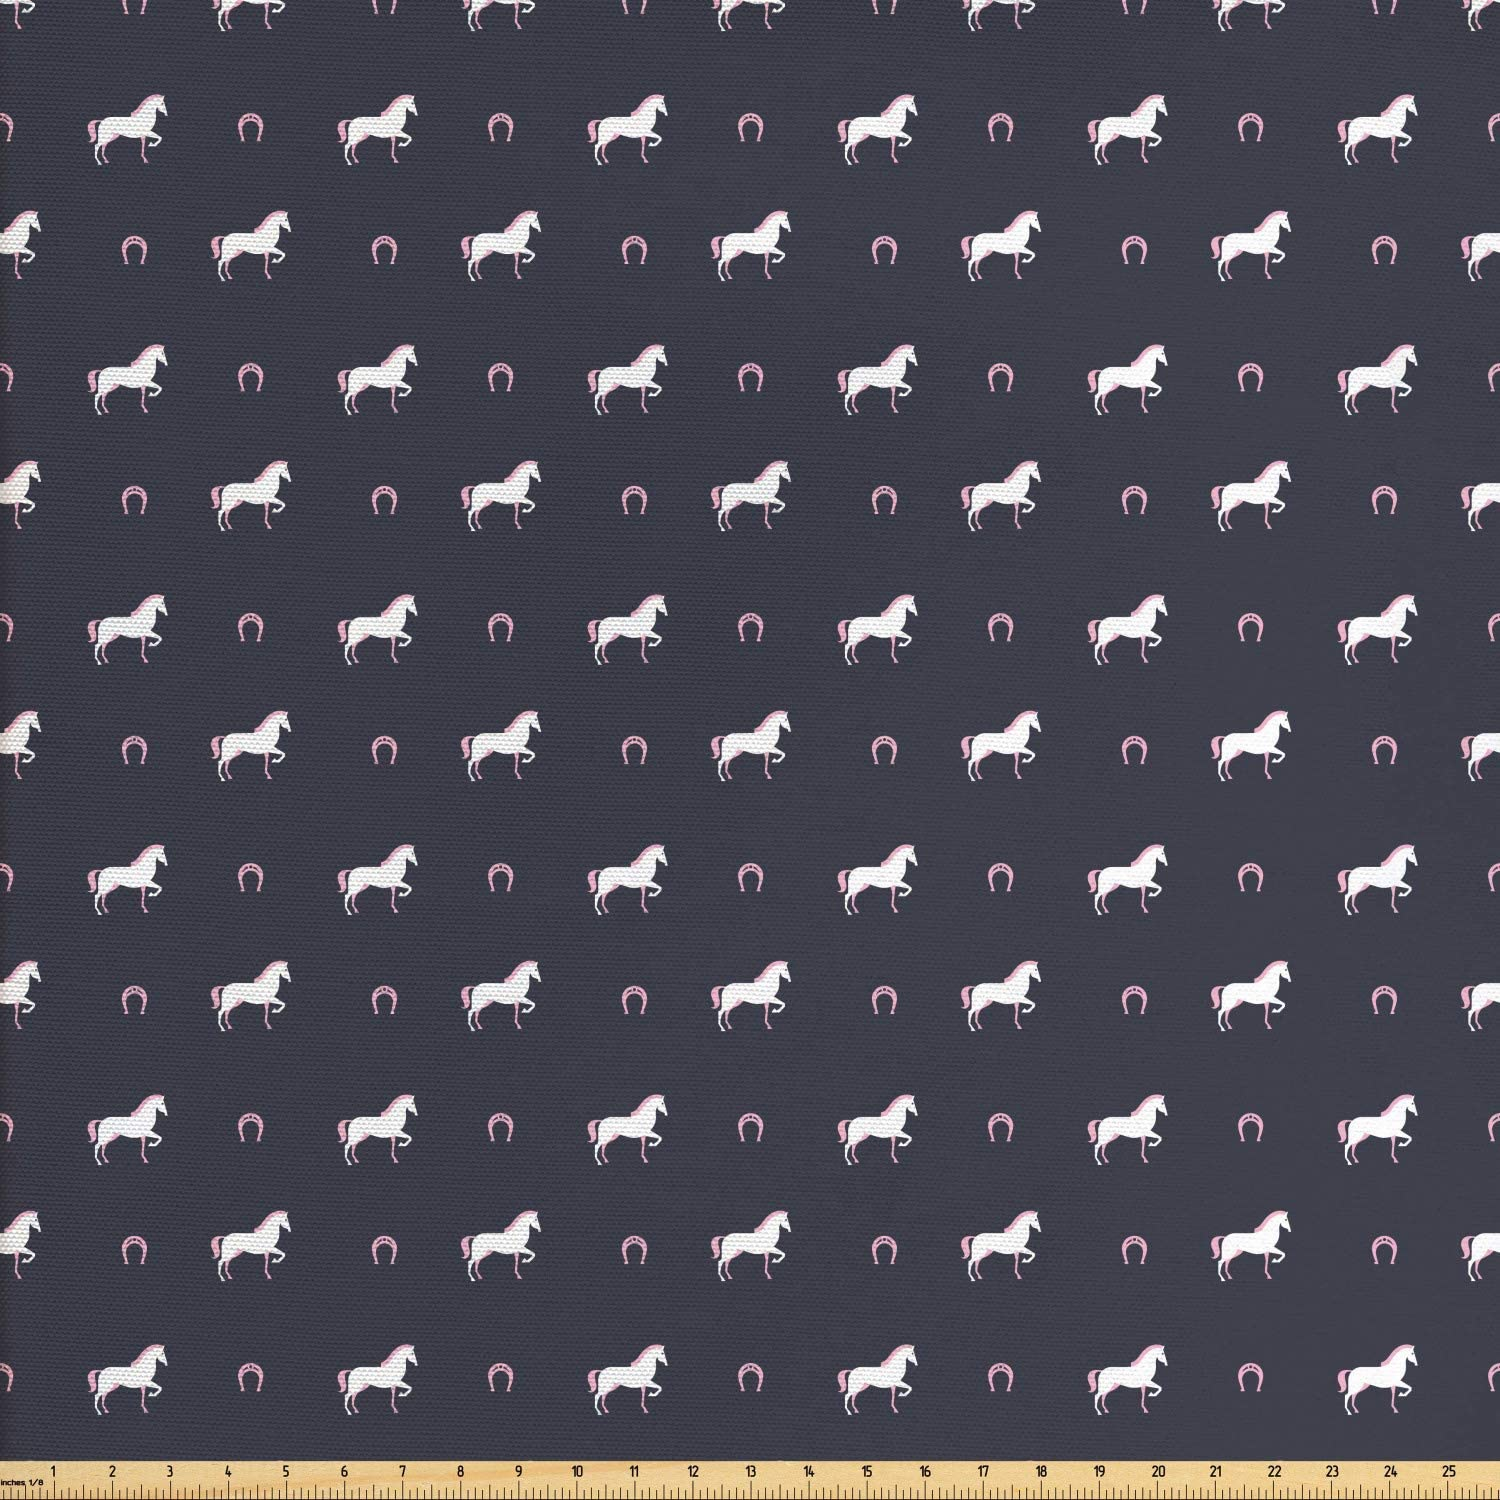 Ambesonne Horses Fabric by The Yard, Animal Pattern Sublime Mustang Silhouette Wildlife Horseshoe Abstract, Decorative Fabric for Upholstery and Home Accents, 3 Yards, Purple Grey